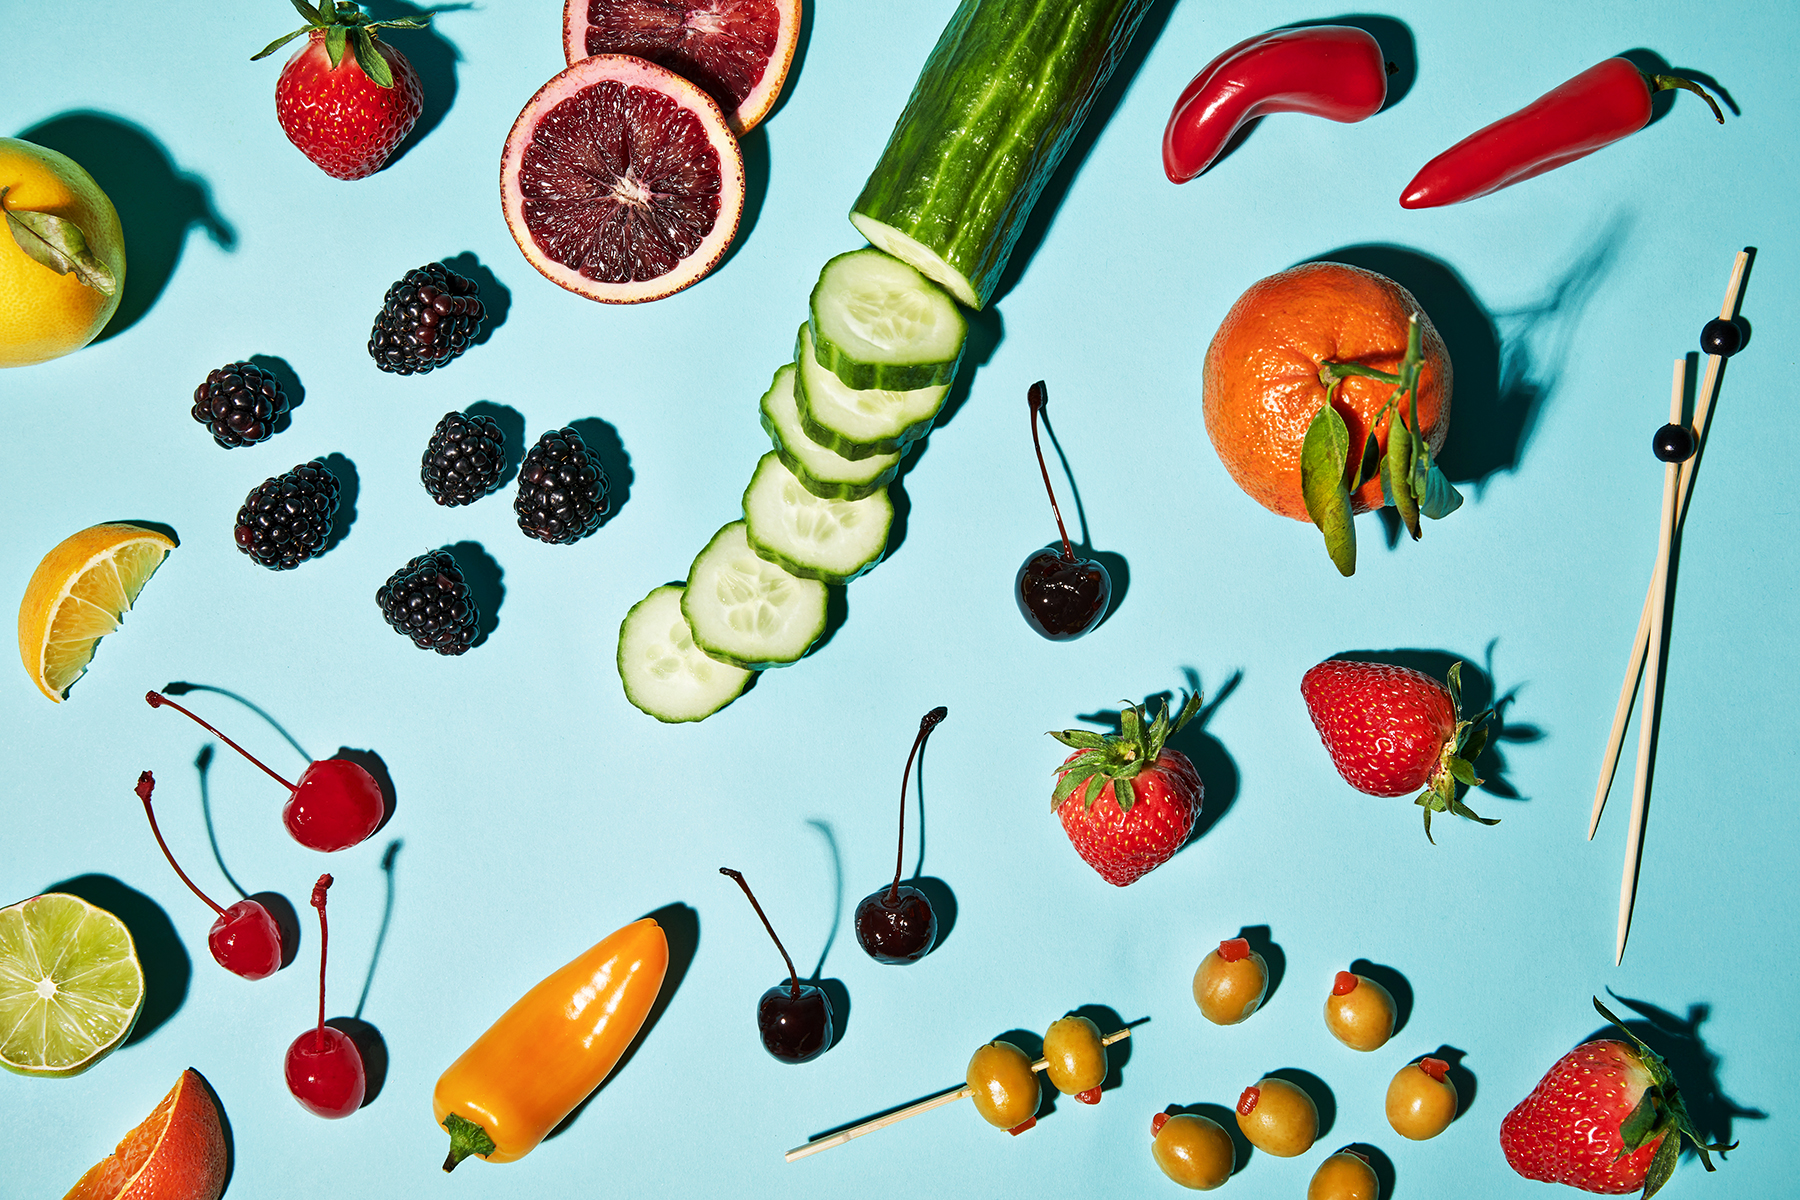 fruits and vegetables for cocktail garnishes